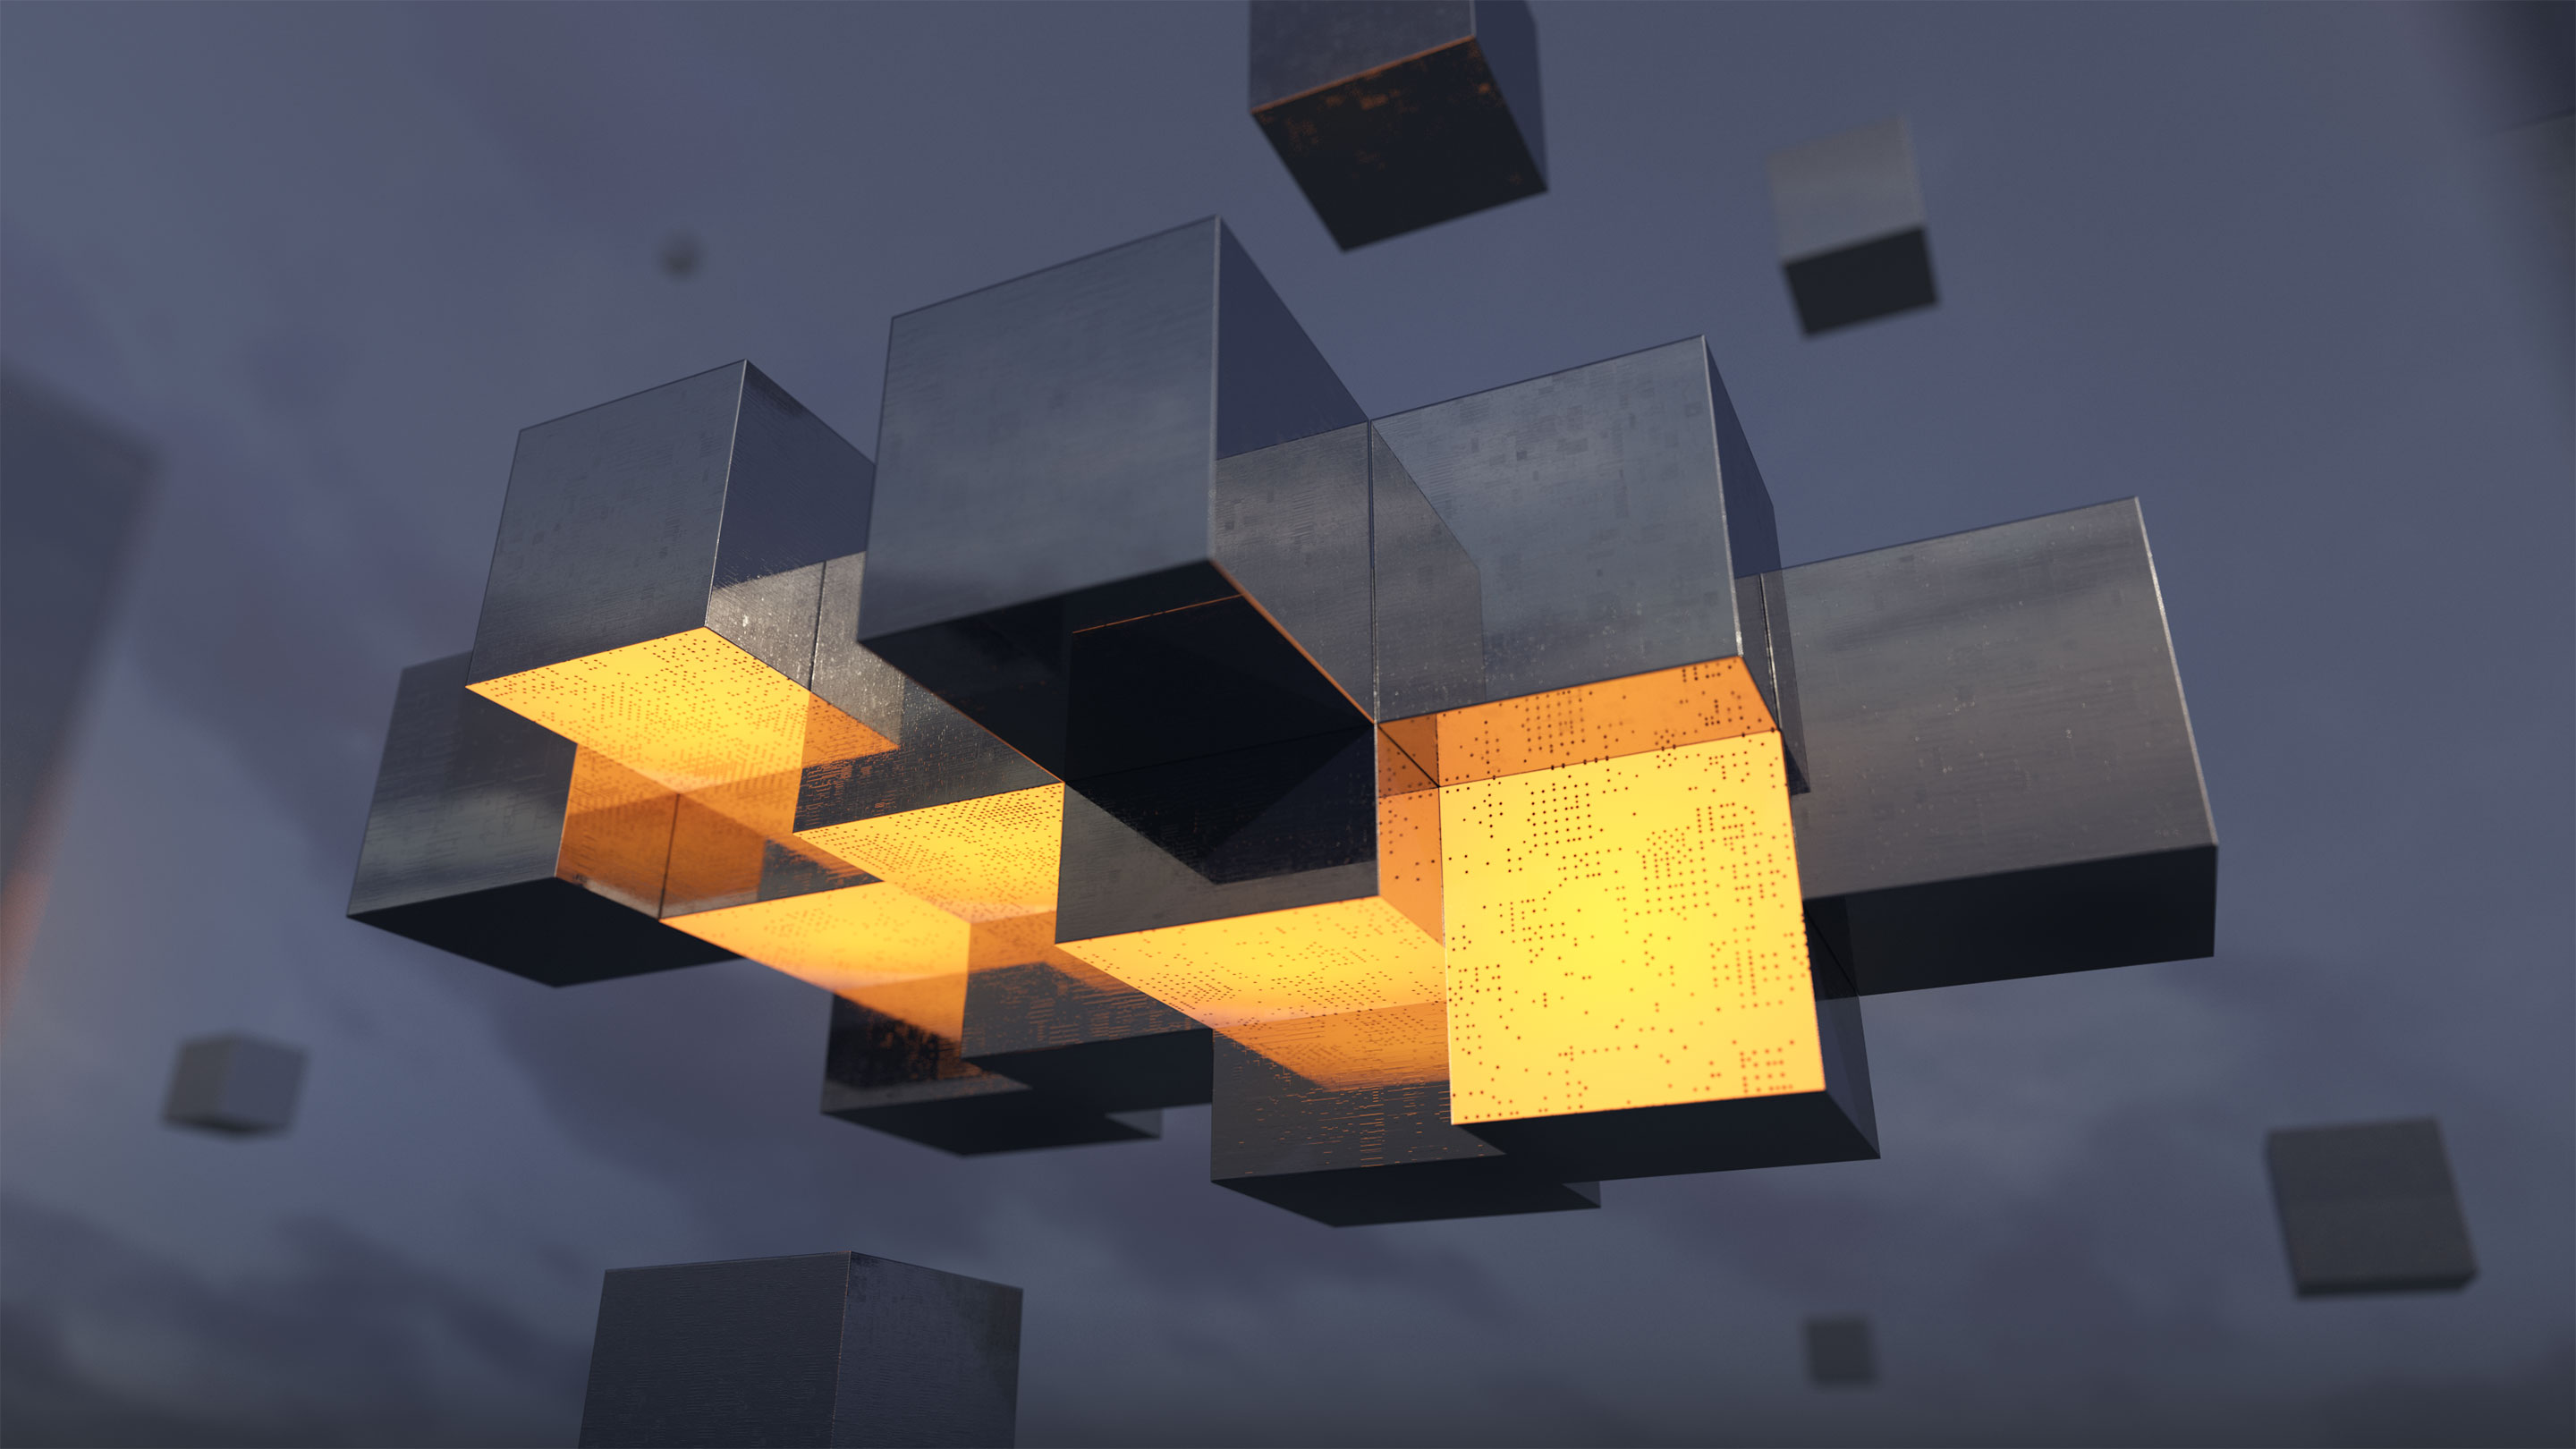 Illustration of floating metal cubes joining together, some of their faces yellow